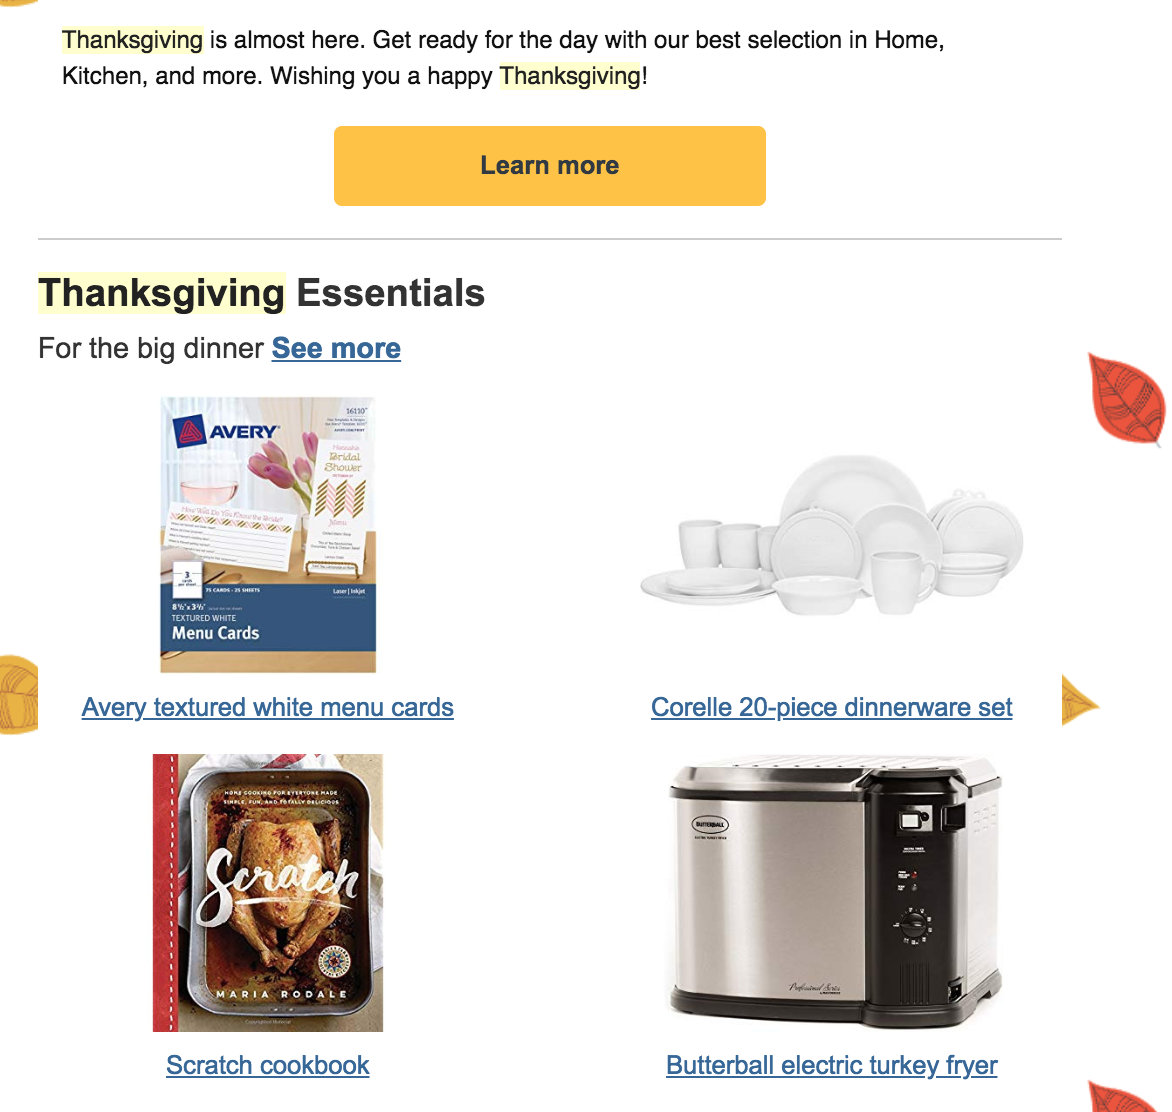 Screenshot showing thanksgiving email sent by amazon